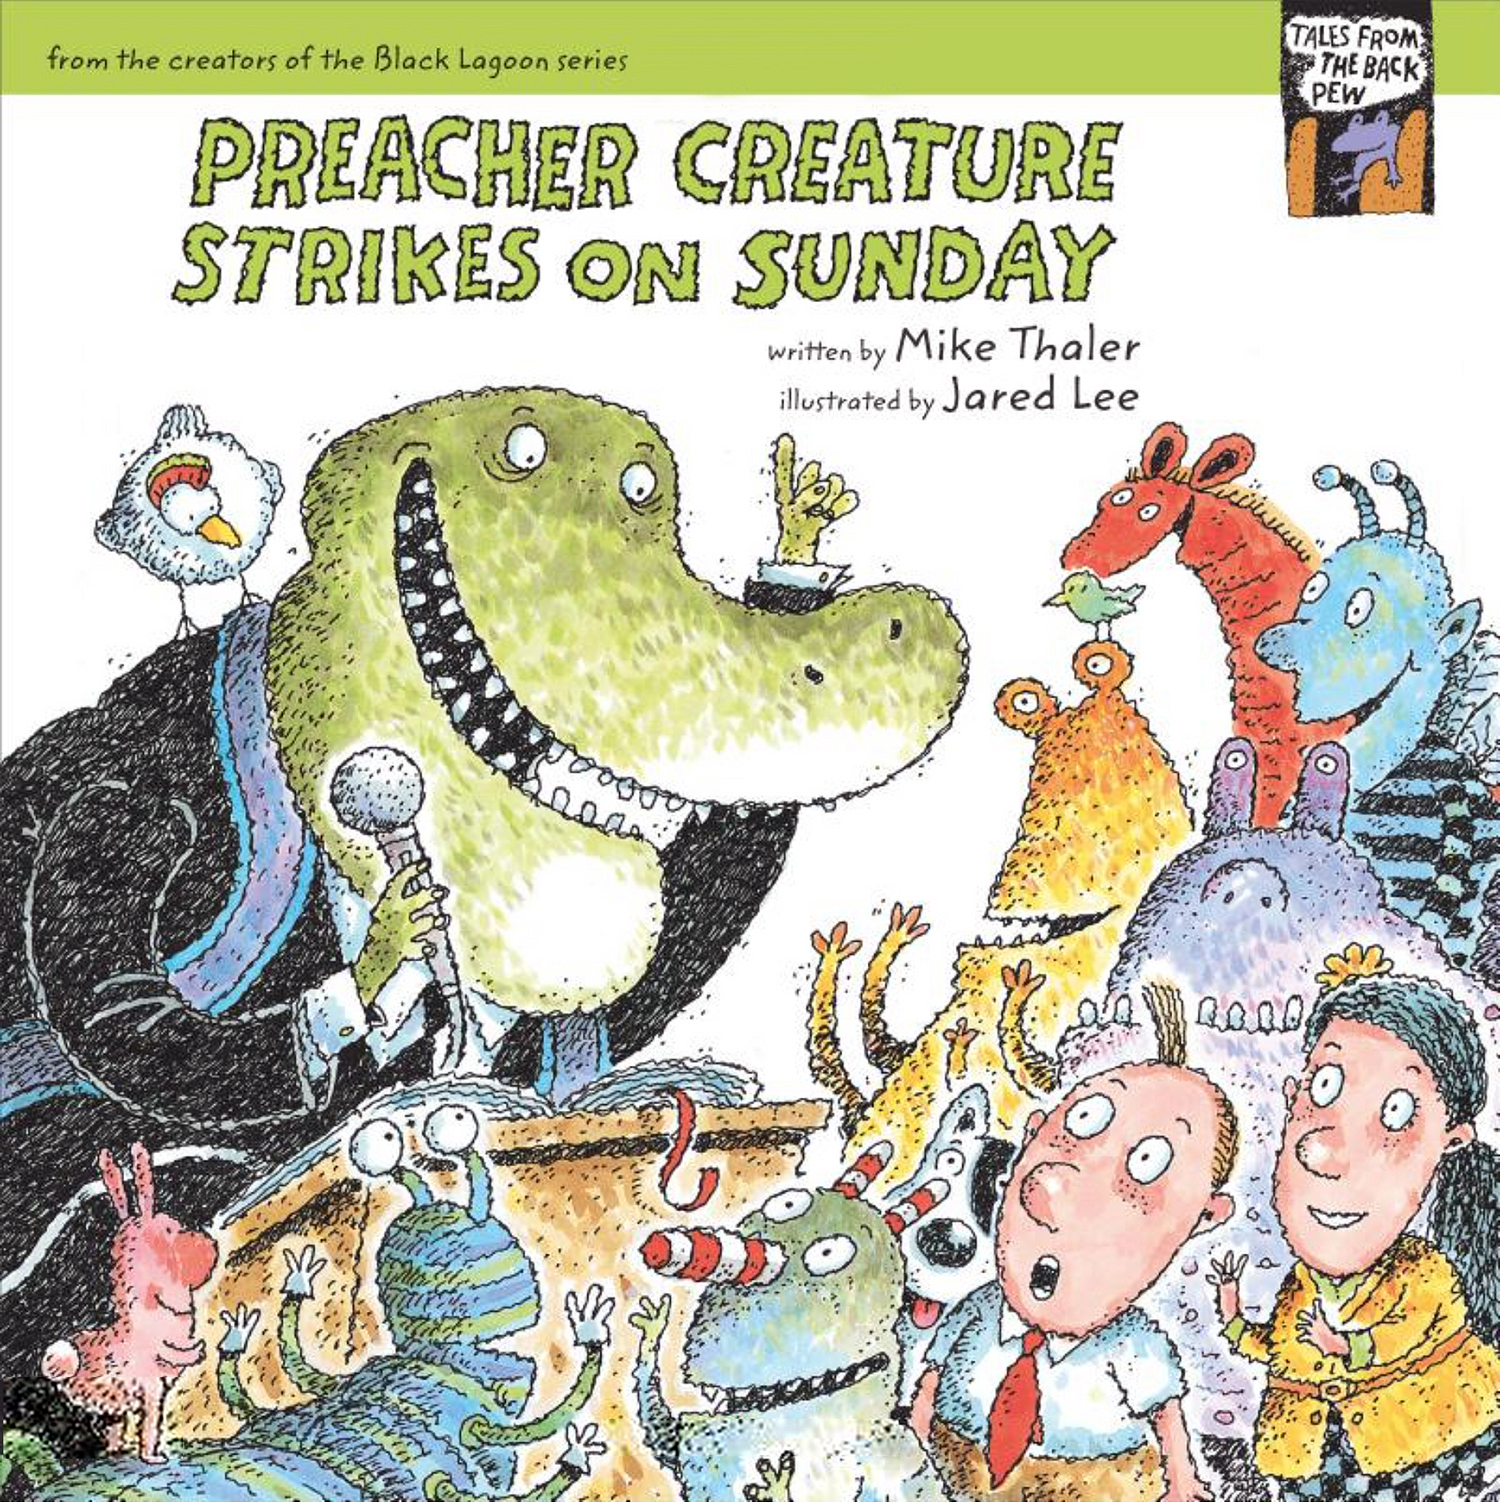 BackPew02-Preacher Creature Strikes on Sunday